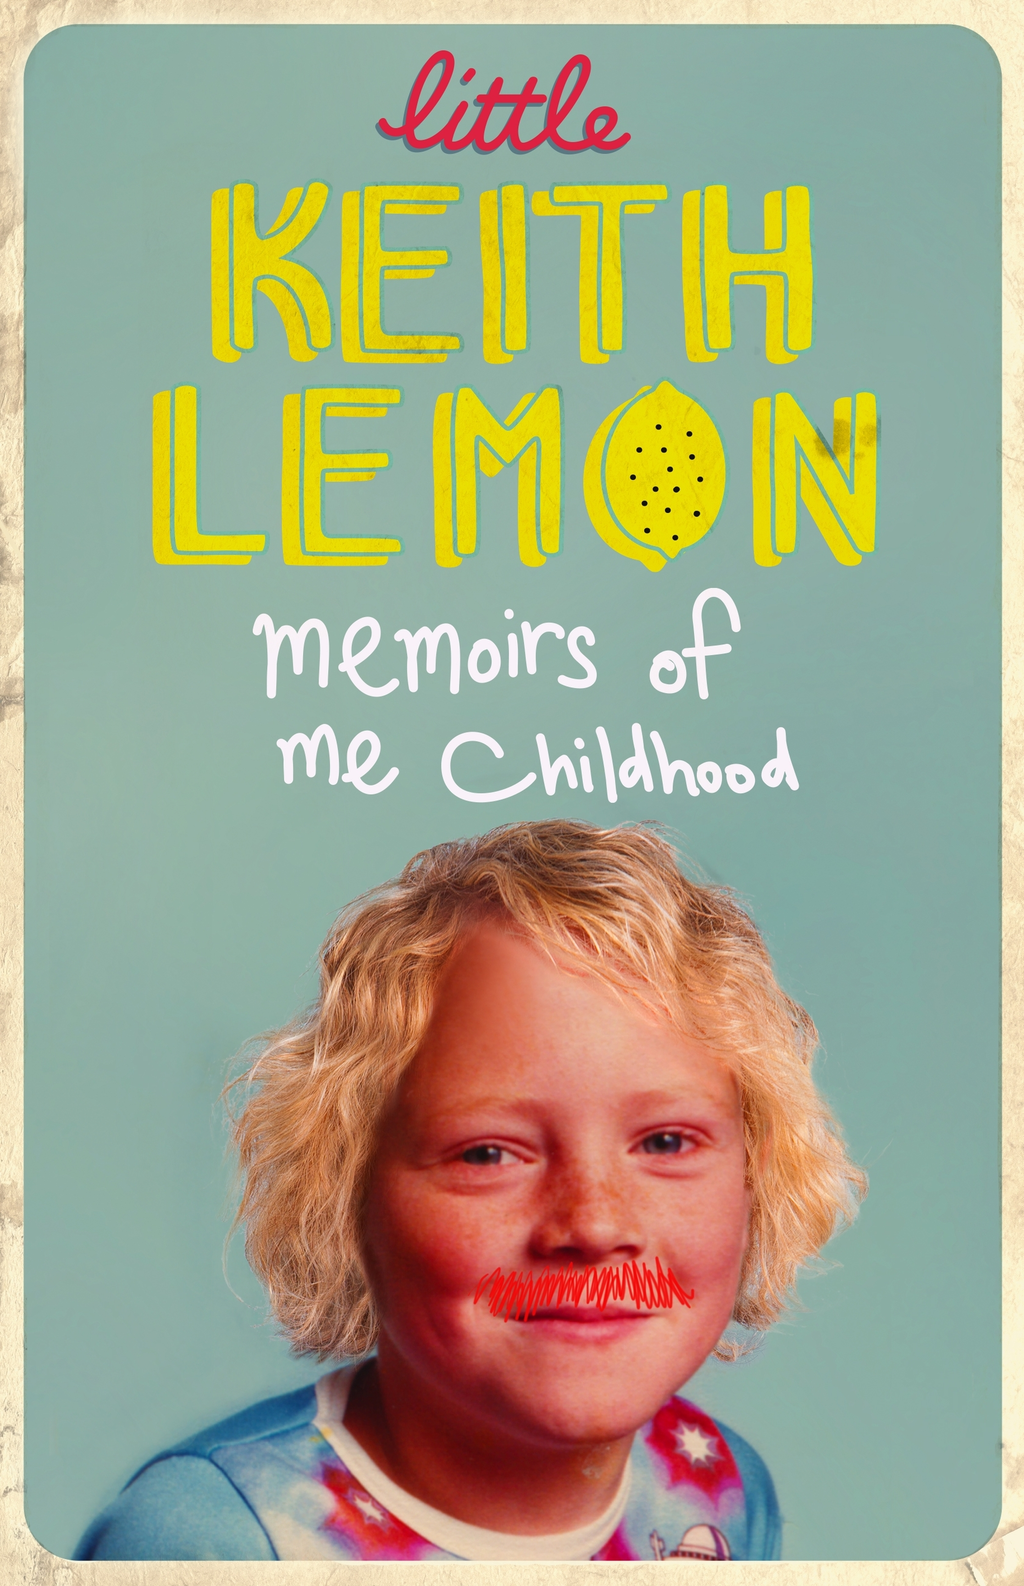 Little Keith Lemon Memoirs of me Childhood